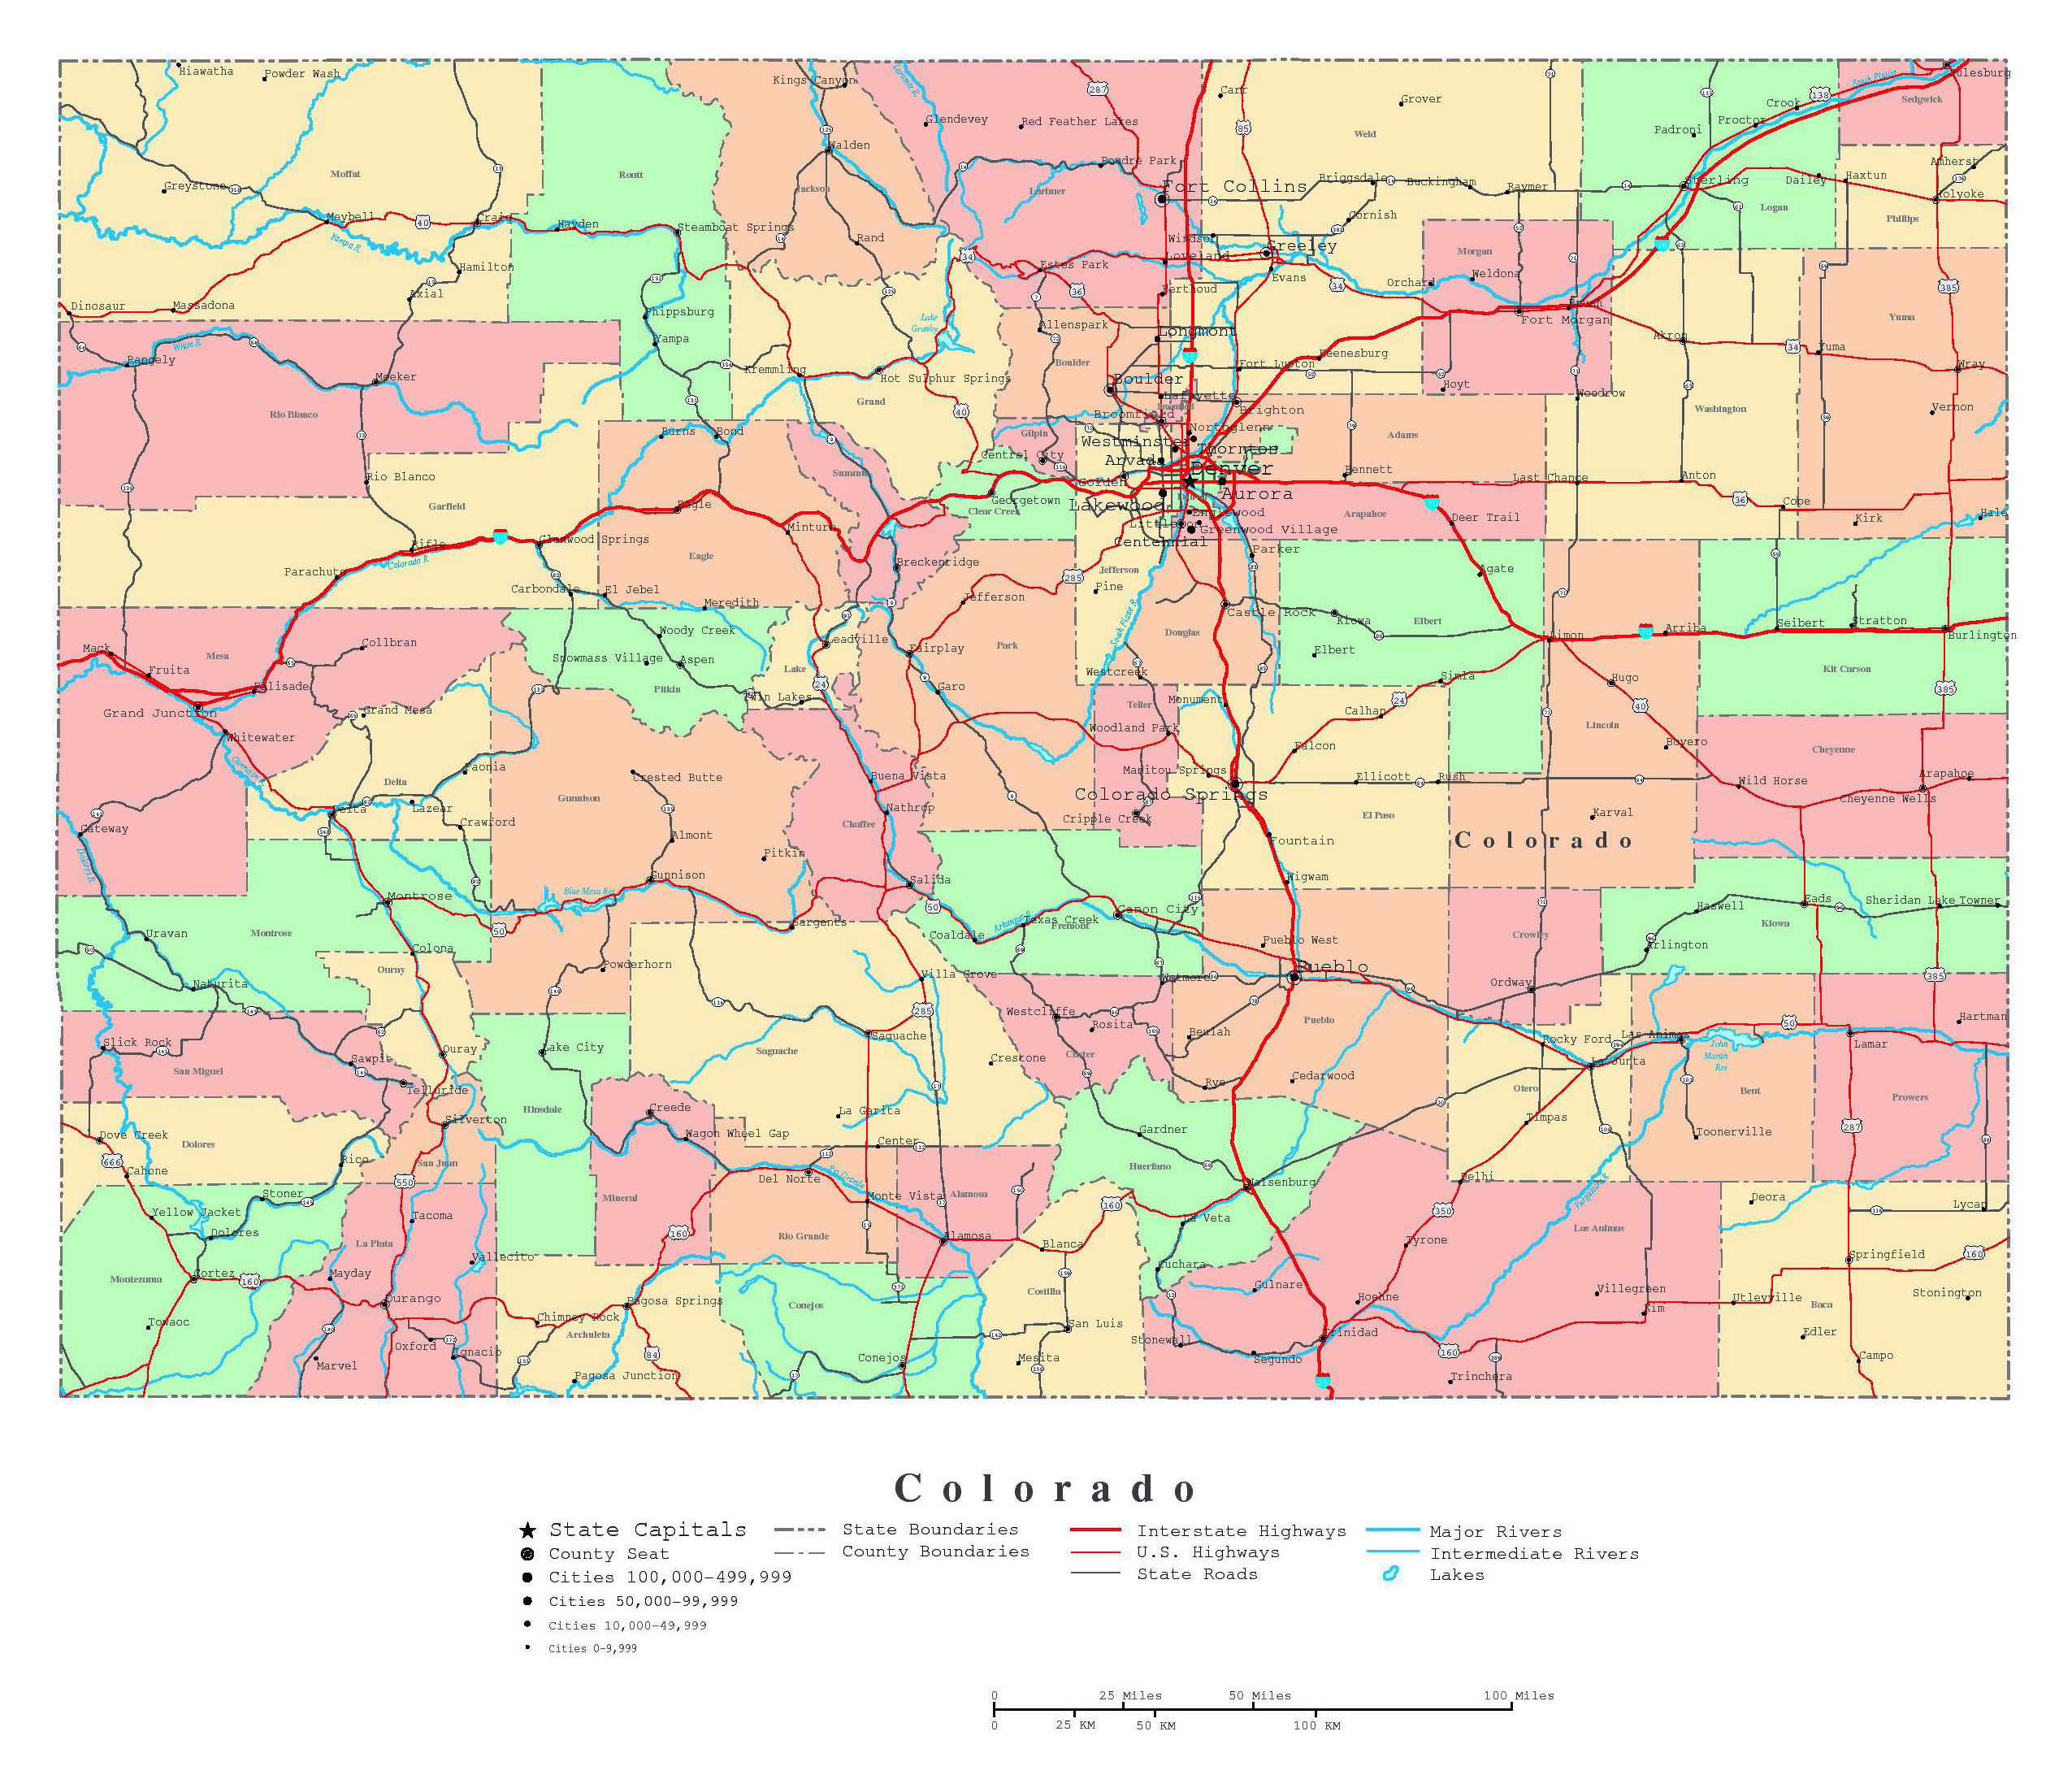 Large Detailed Administrative Map Of Colorado State With Roads - State of colorado map